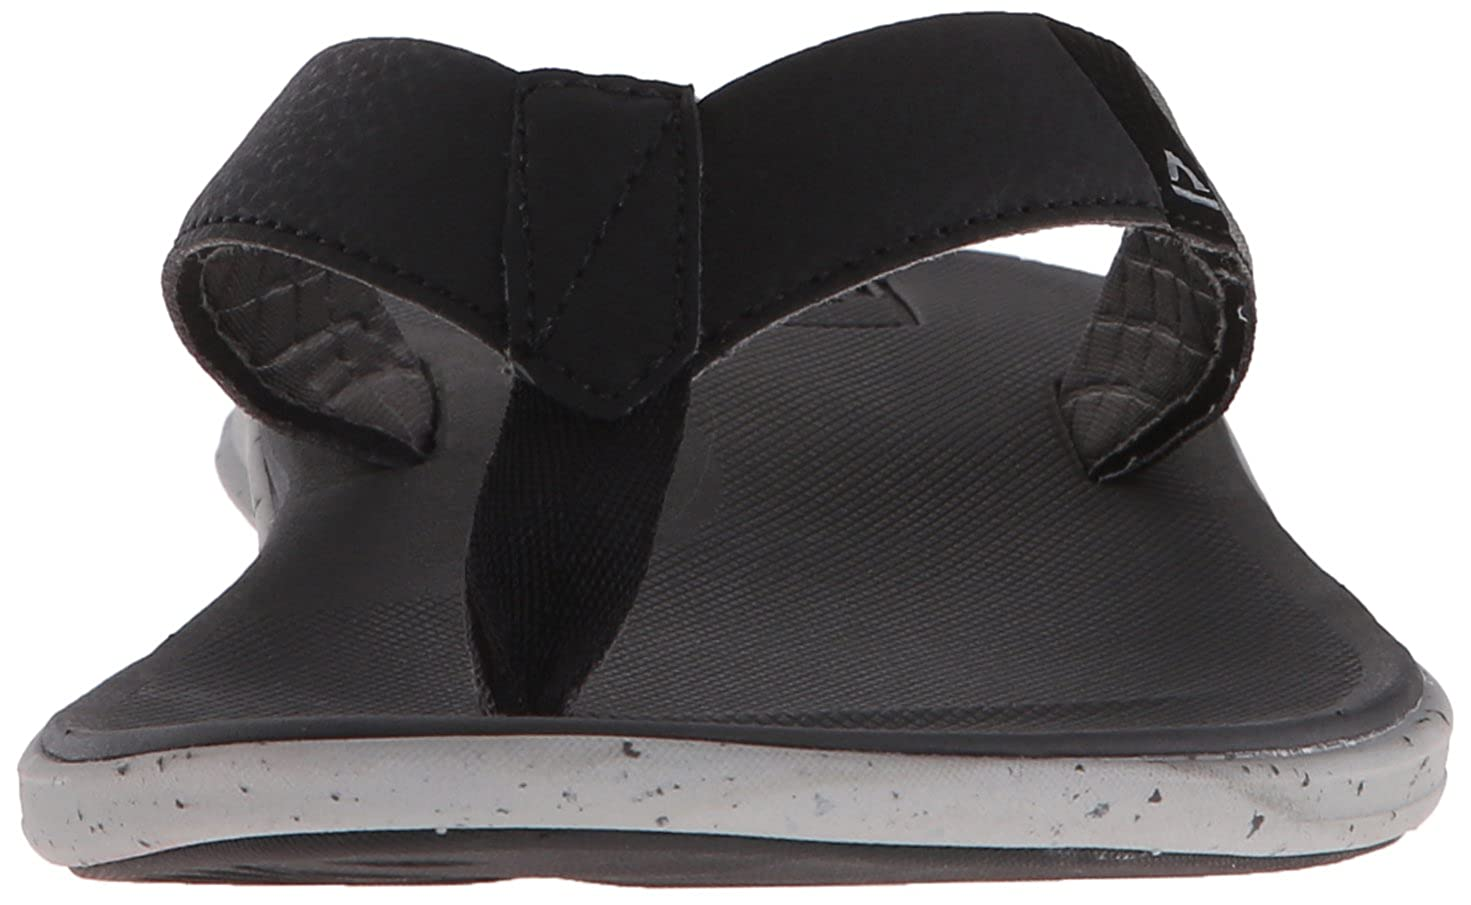 a9200623640 Reef Men s Slammed Rover Flip Flops Black Olive  Amazon.co.uk  Shoes   Bags